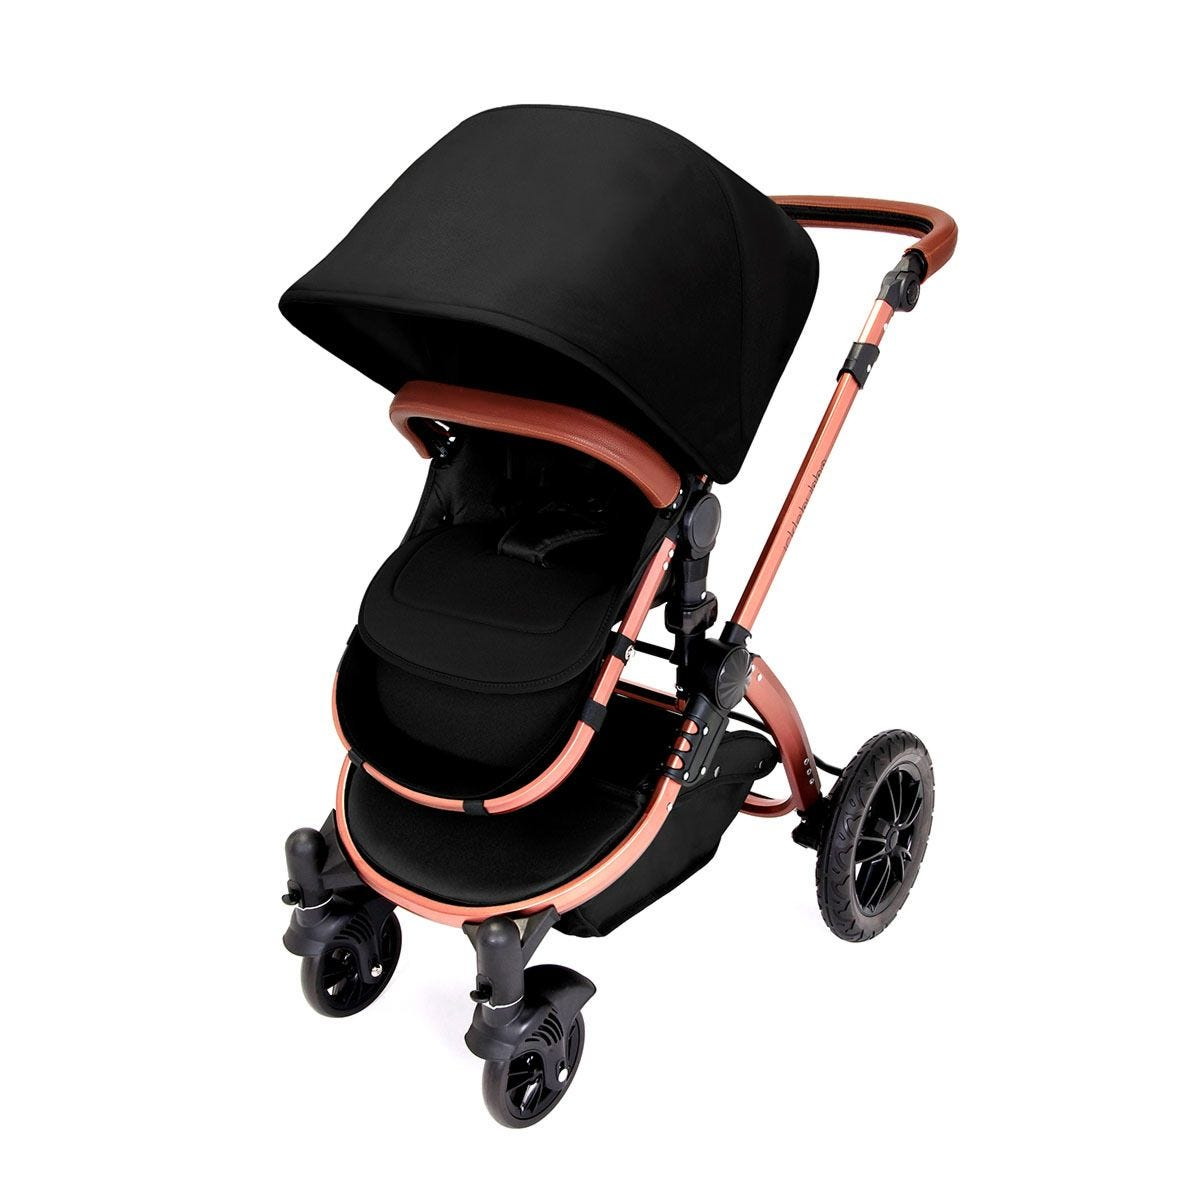 Ickle Bubba Stomp V4 All in One Travel System with Isofix Base - Midnight on Bronze with Tan Handles